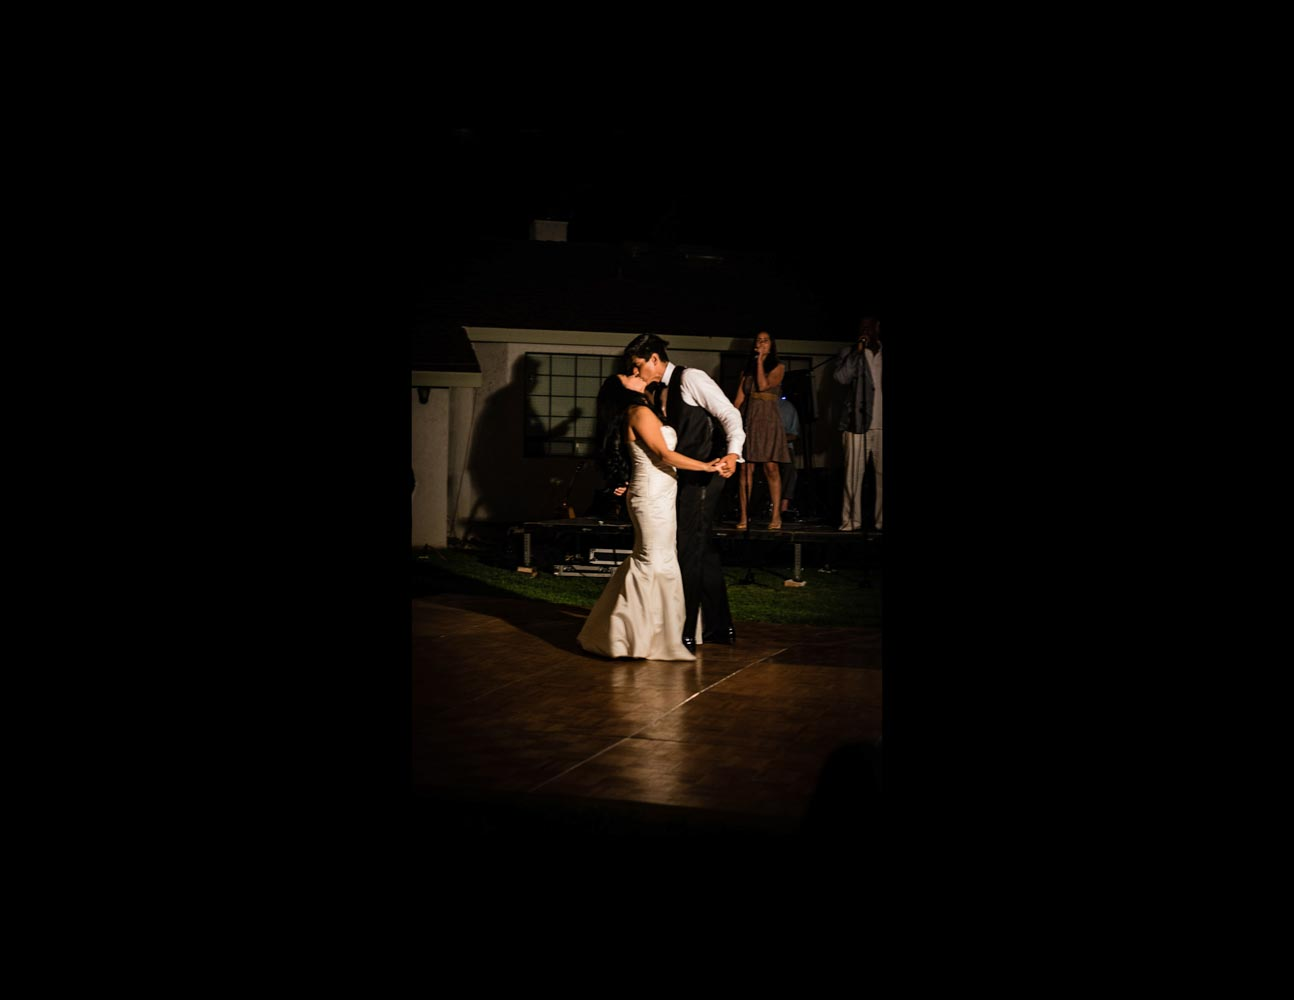 Nighttime photo of bride and groom dancing during wedding reception